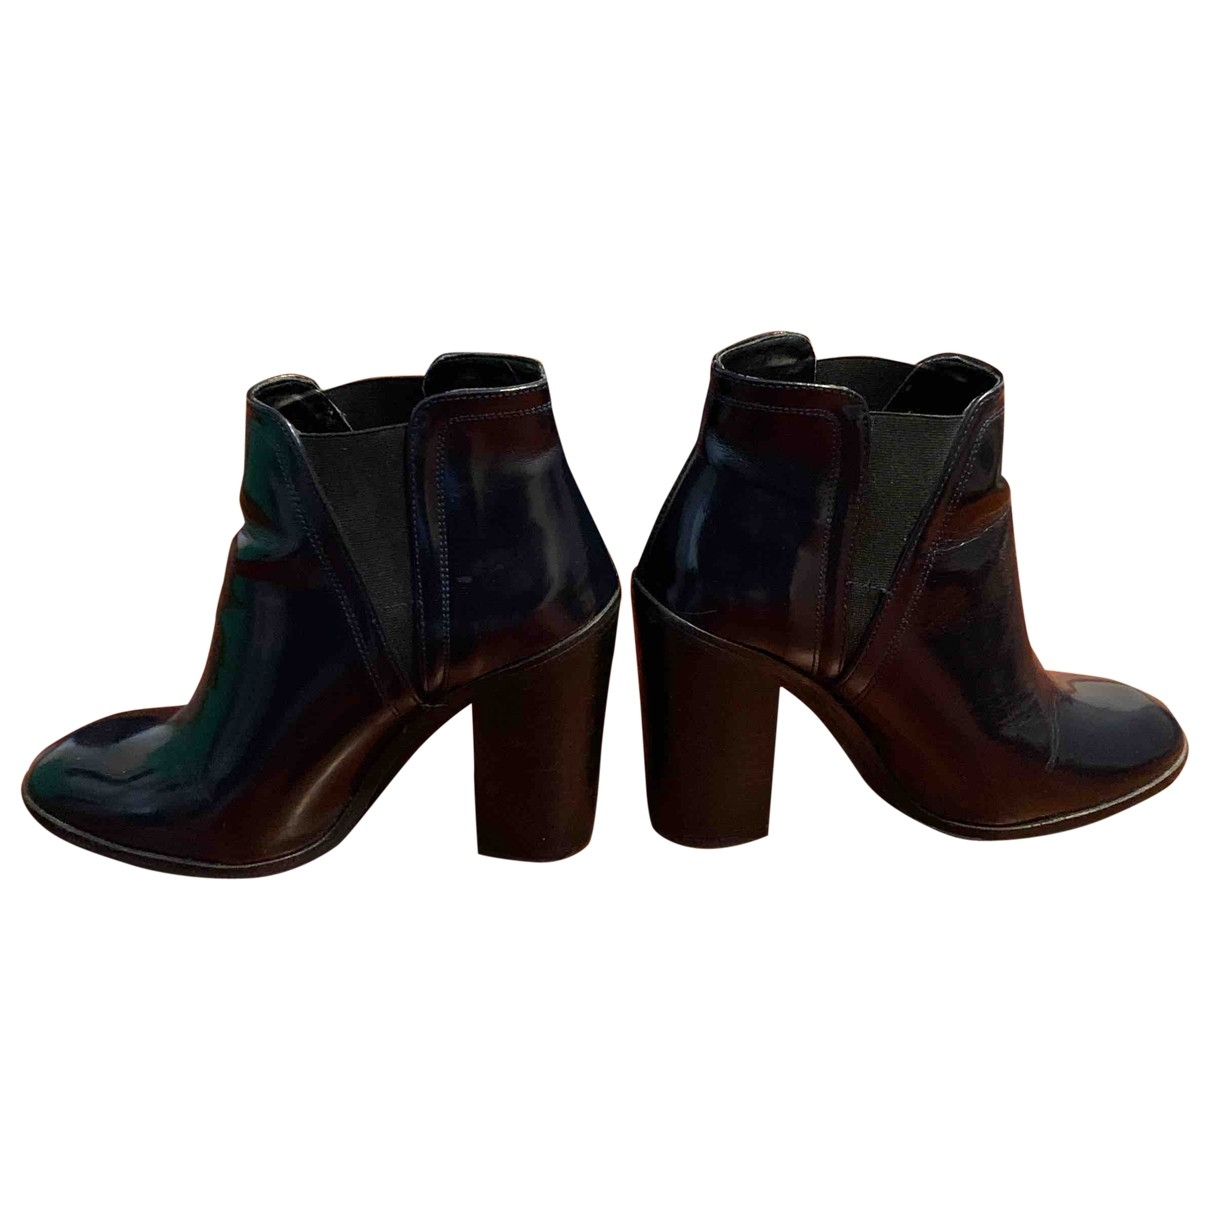 Zara \N Blue Patent leather Ankle boots for Women 38 EU